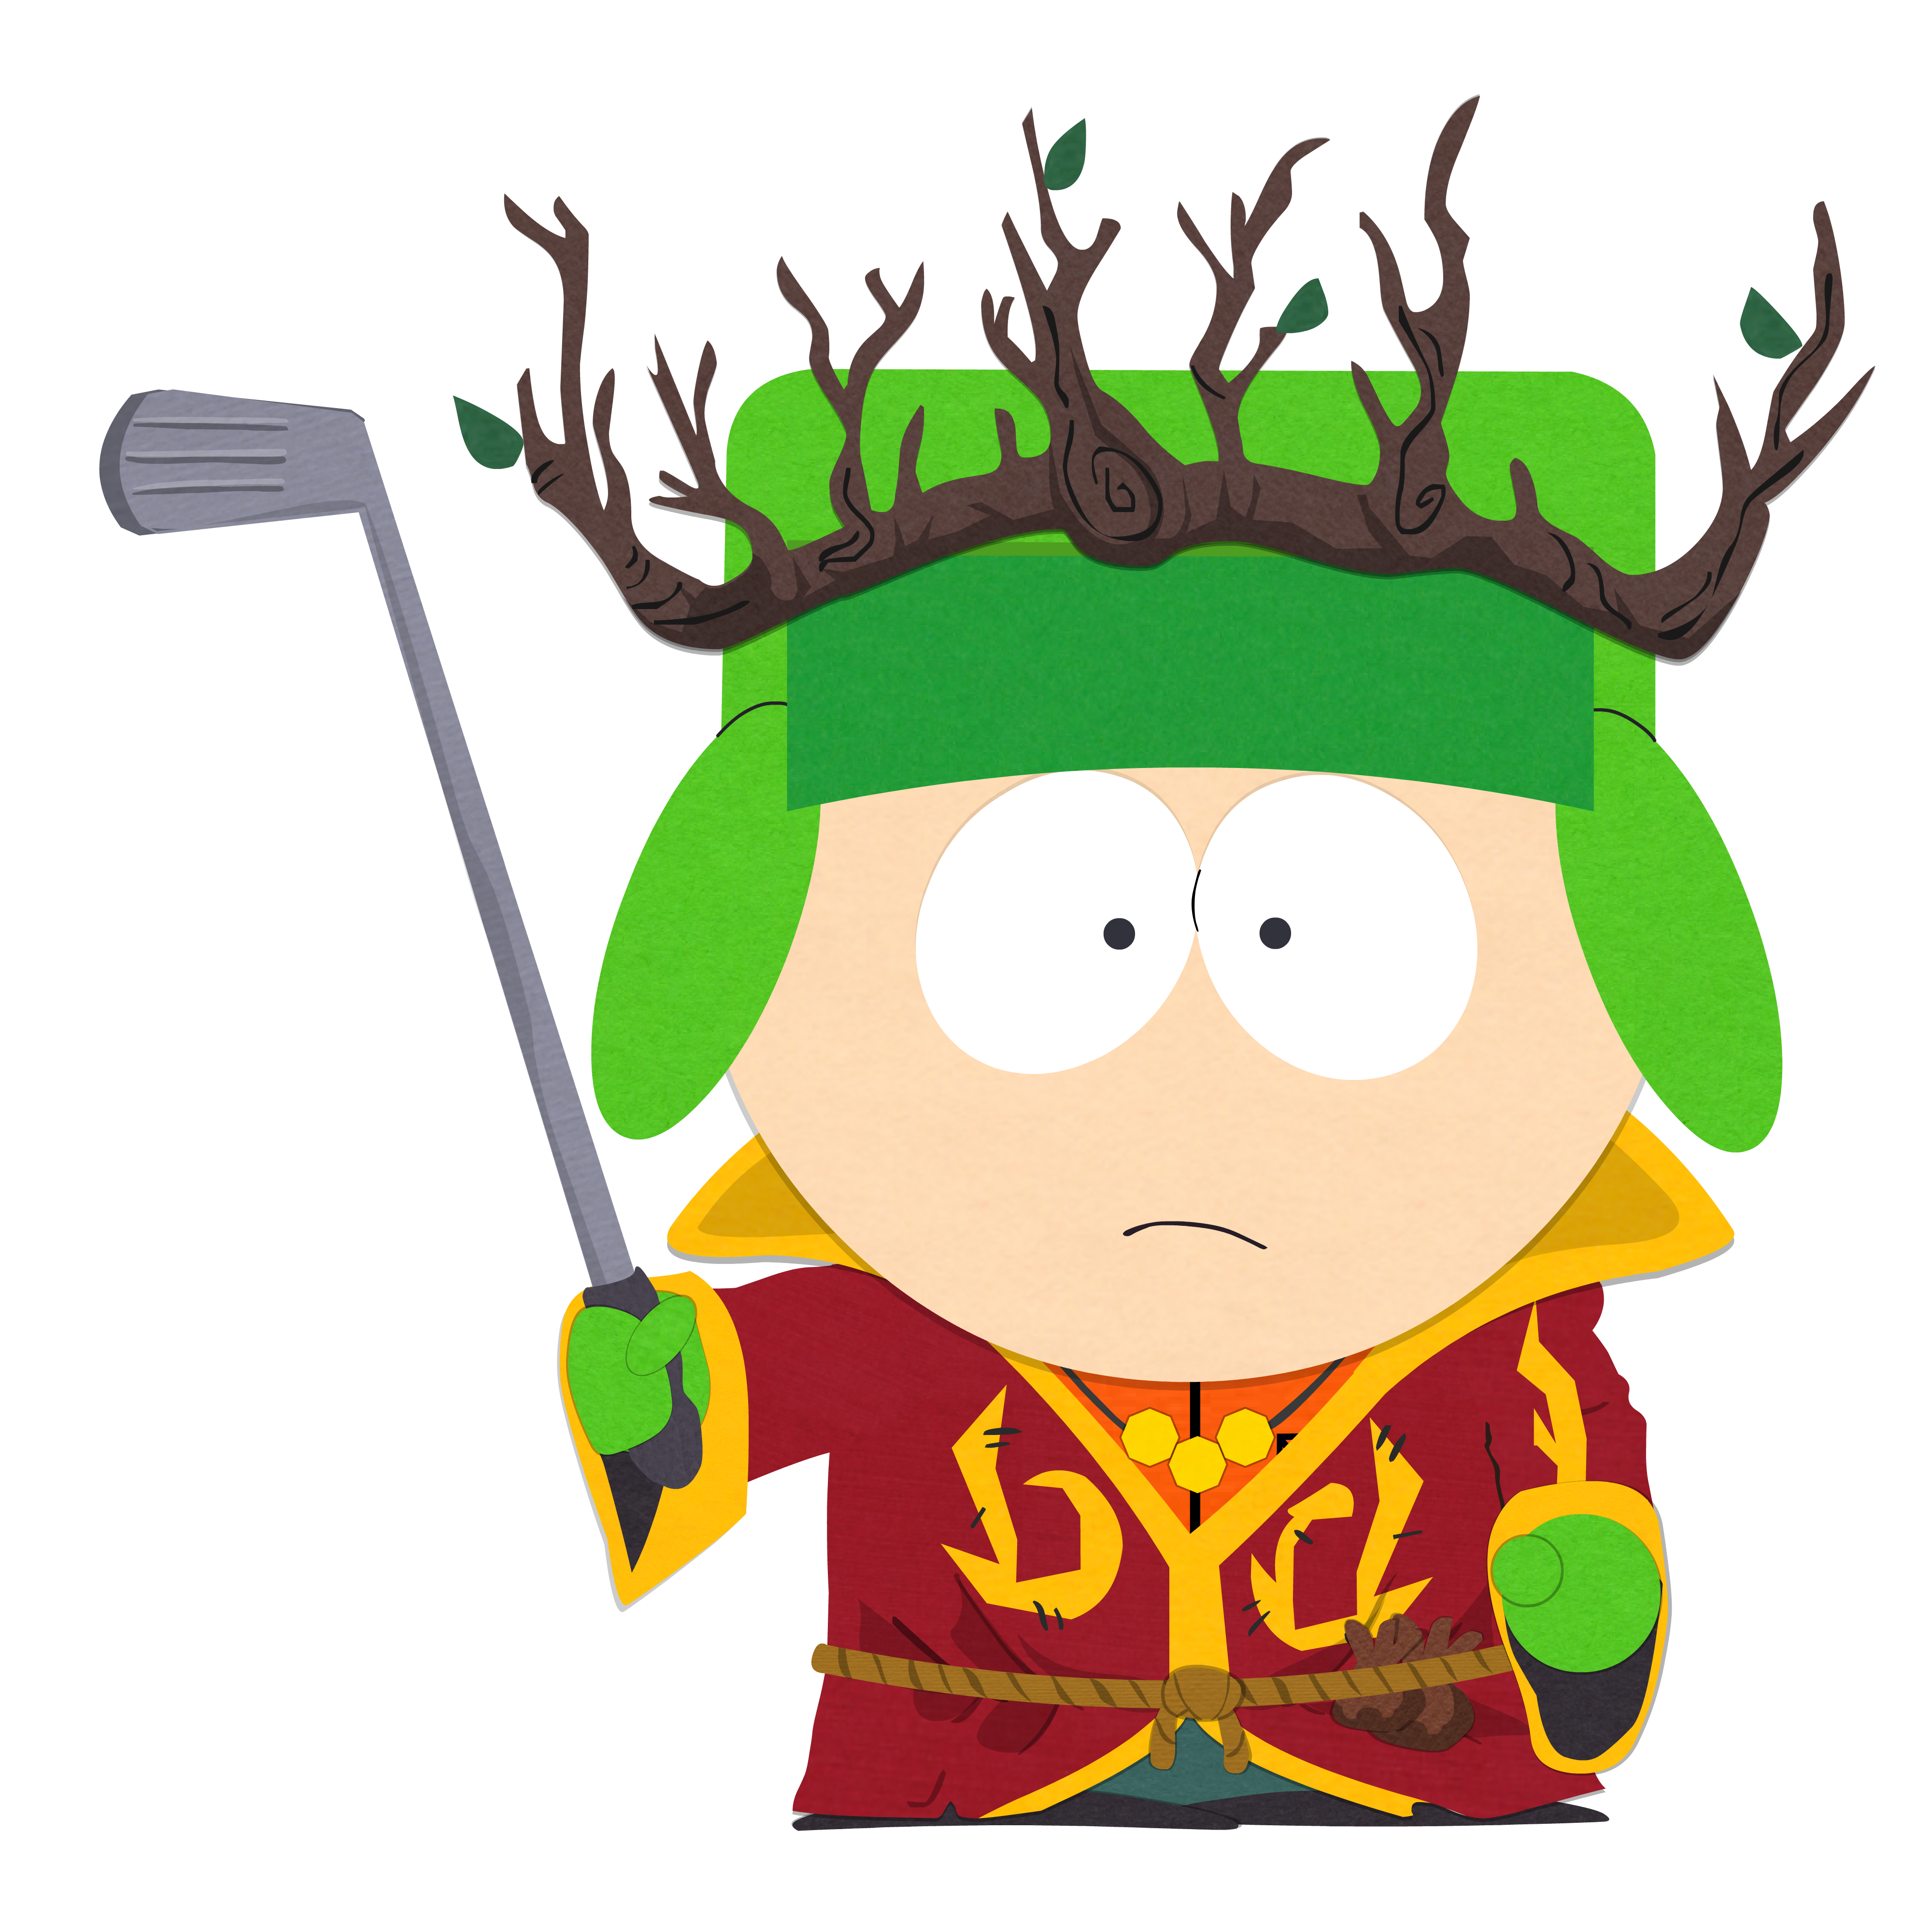 South Park: The Stick of Truth | RPG Site | 4000 x 4000 png 4257kB